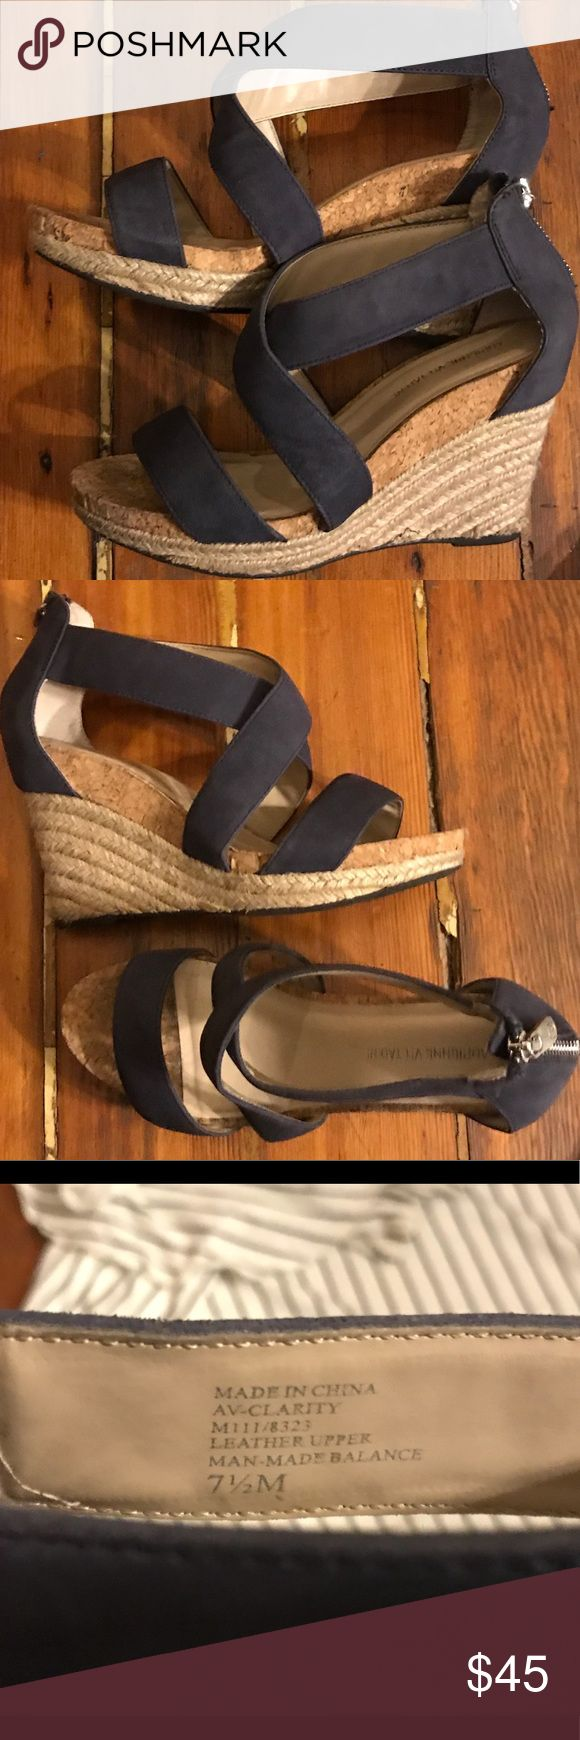 Adrienne Vittadini Navy Leather Espradille Wedge Worn once!  100% Leather upper 2 in wedge heel - comfortable  Back silver toned zipper Made in China   Clean/smoke free home.   Bundle and save 15% :) Adrienne Vittadini Shoes Sandals